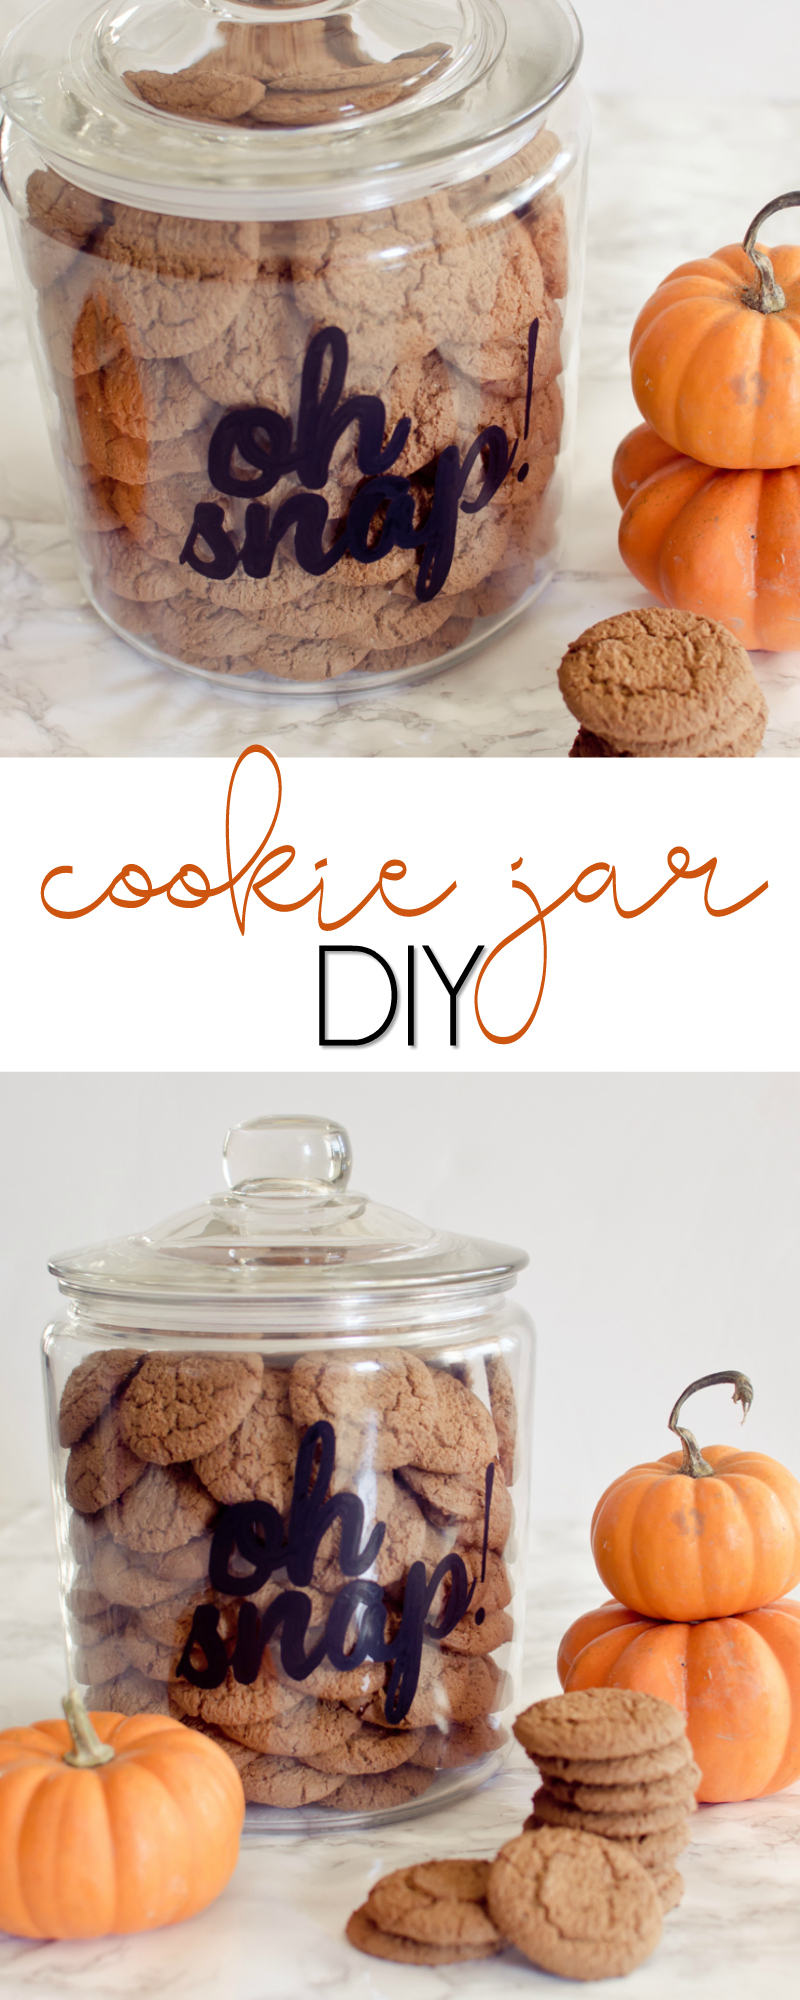 cookie-jar-diy